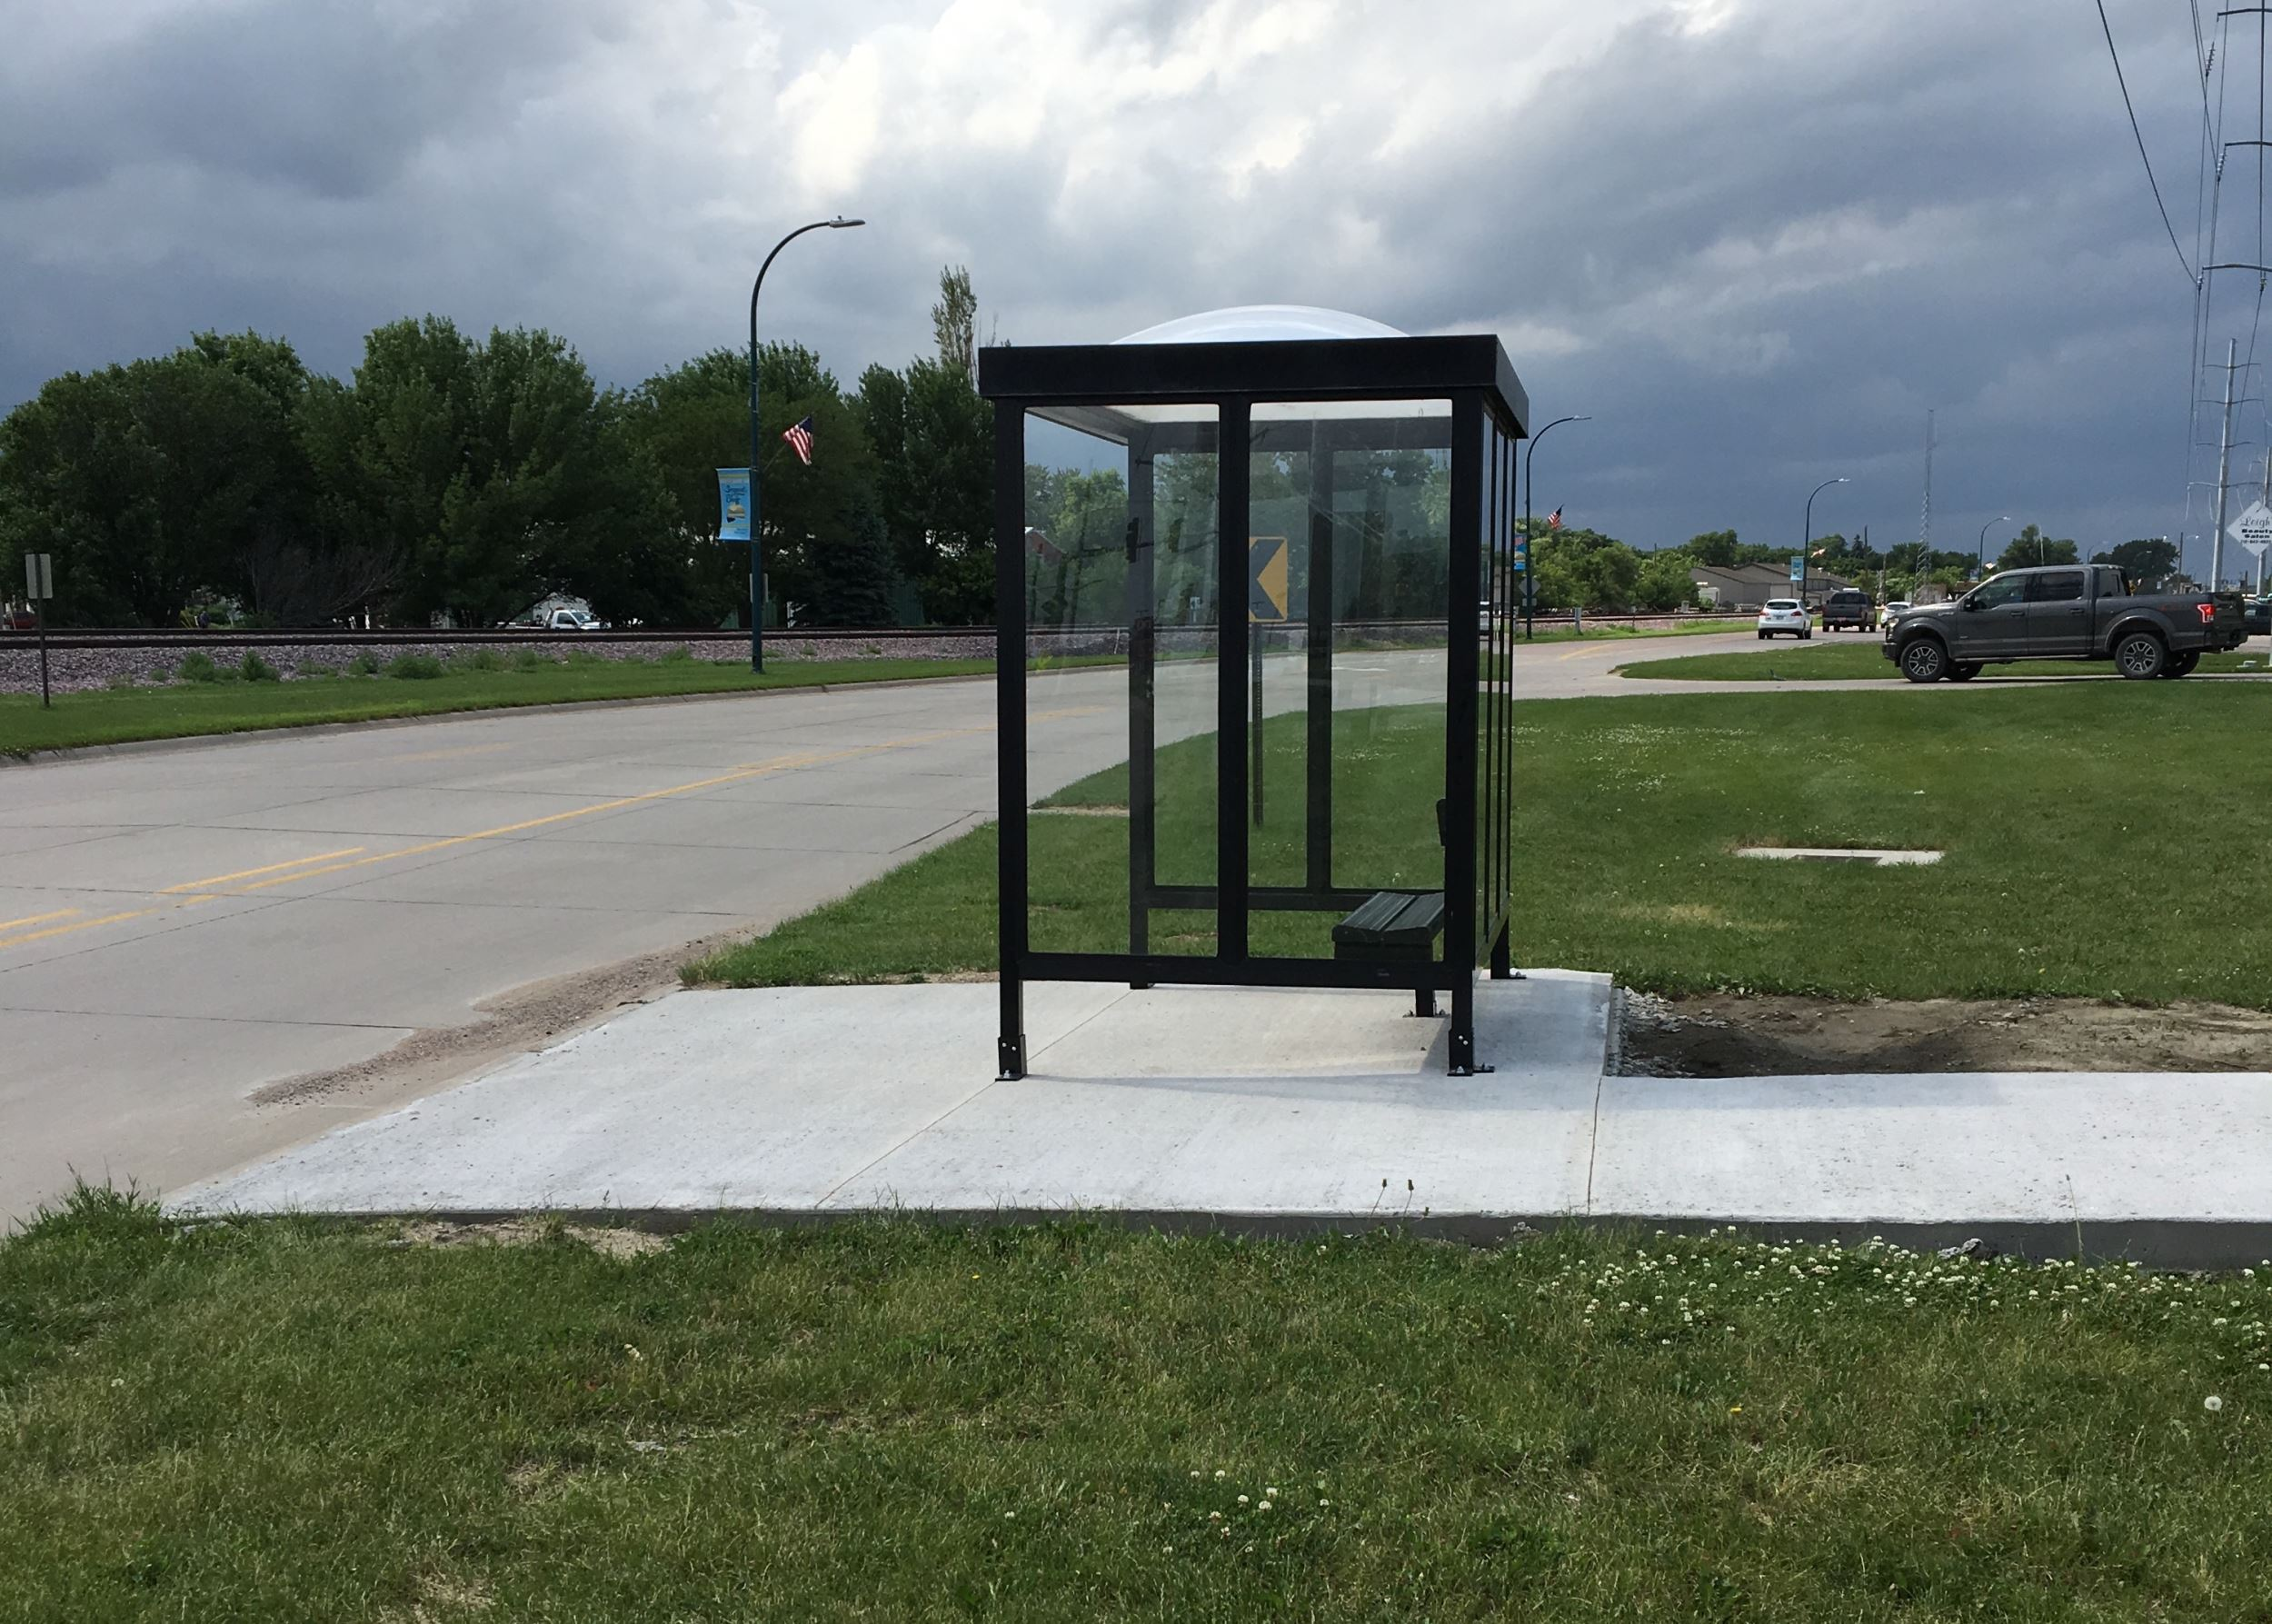 Bus stop and sidewalk in Sergeant Bluff